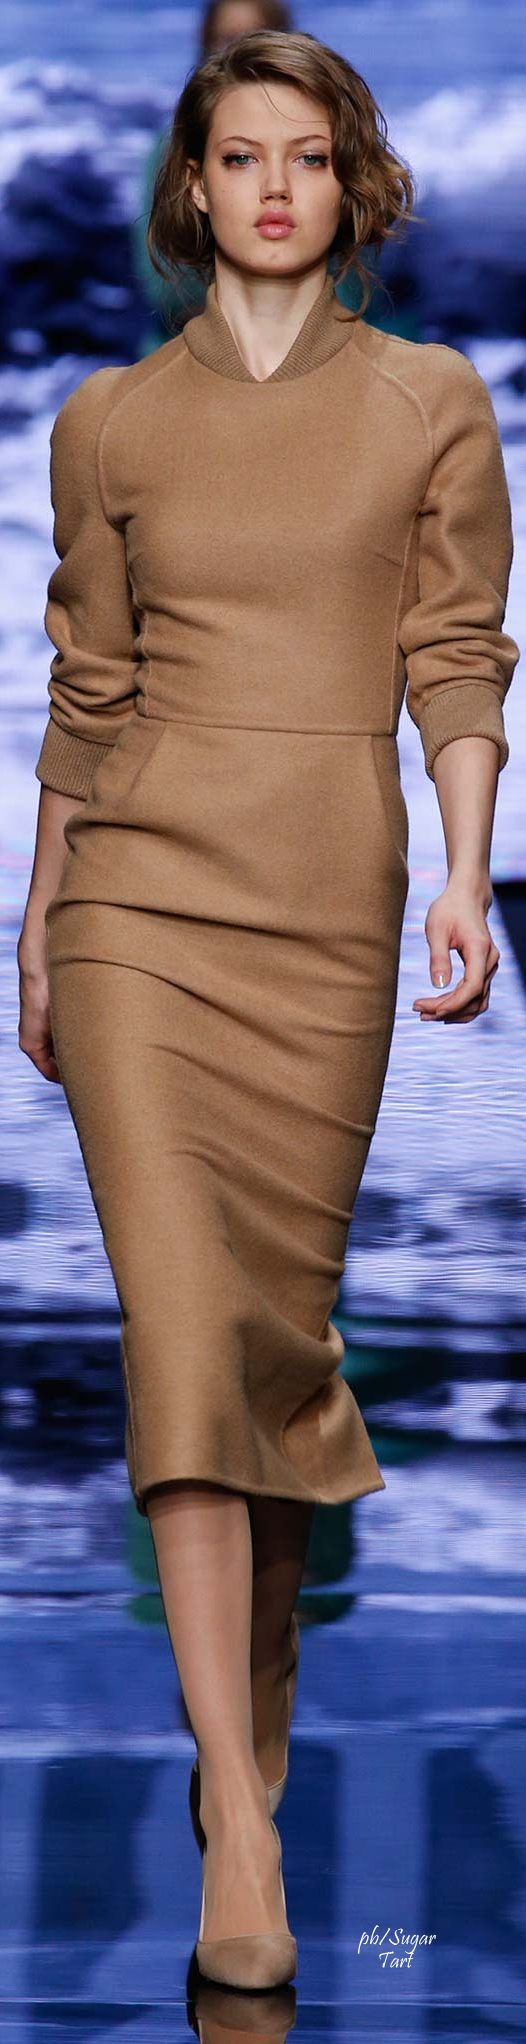 Class never goes out of style. / Max Mara Fall 2015 RTW